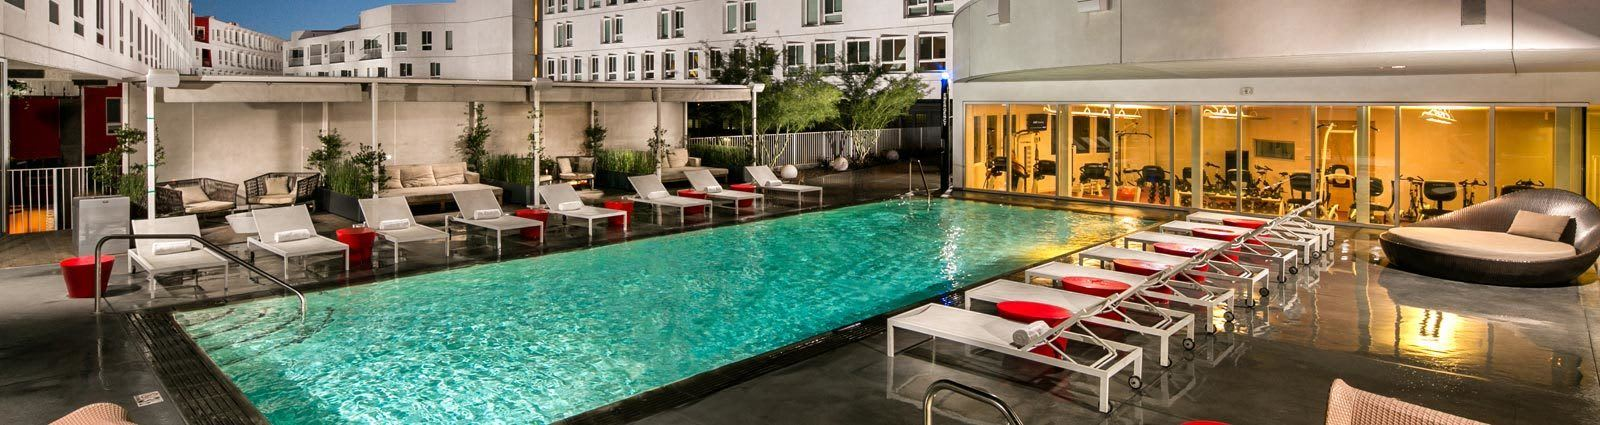 Check out our floor plan options in Los Angeles